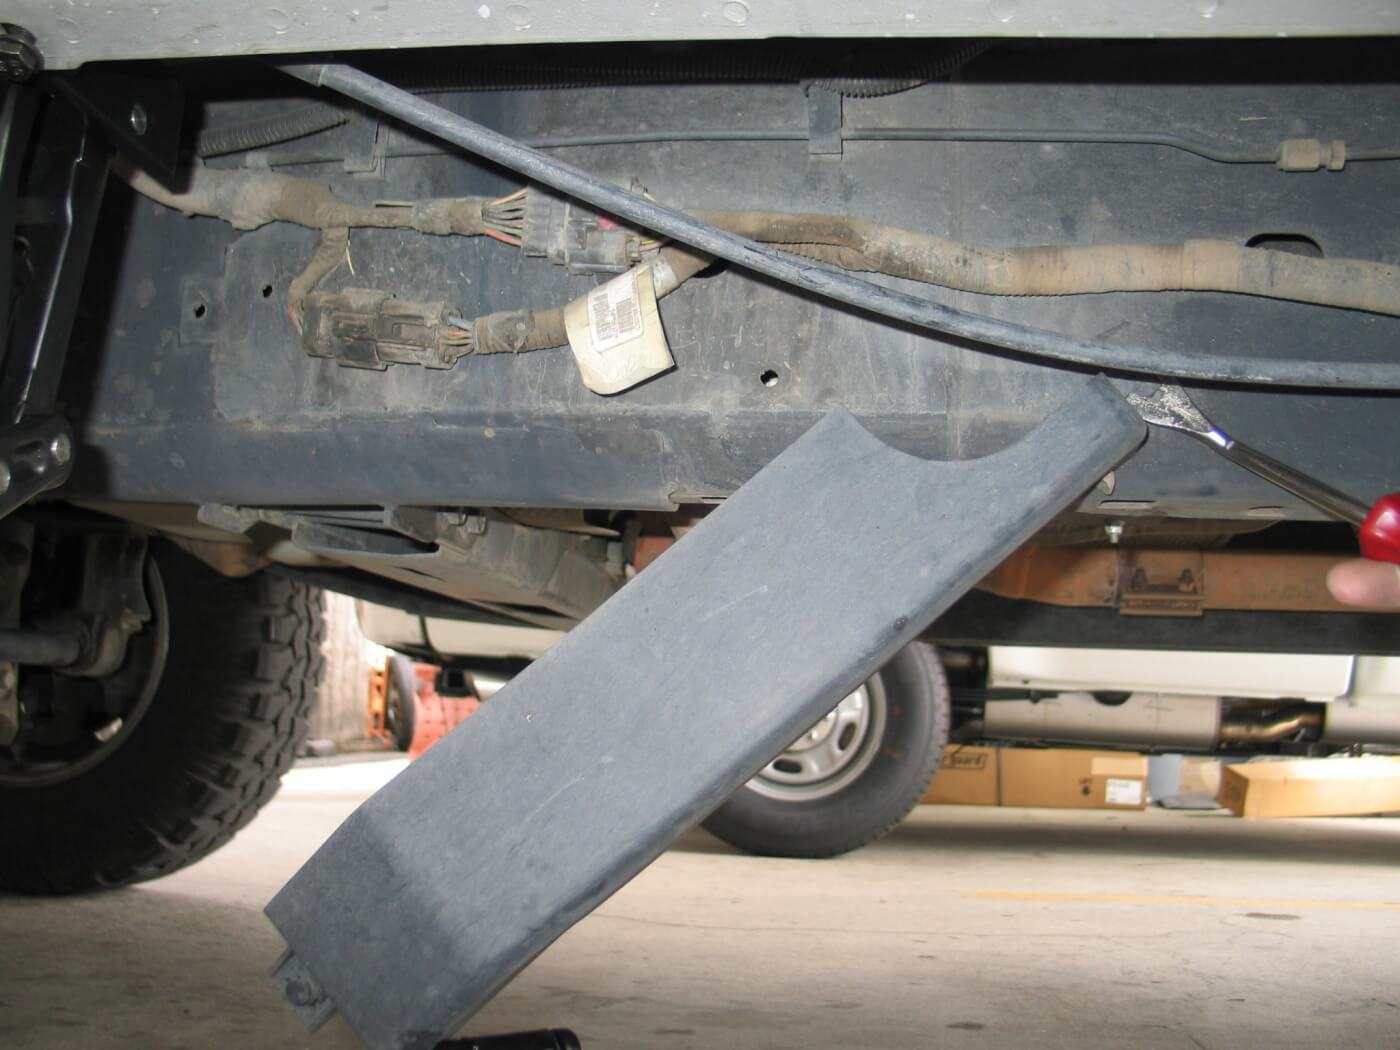 Bestops Retracting Running Boards Cj8 Scrambler Wiring Harness On The Frame Rail Under Drivers Door Is A Factory Wire Cover